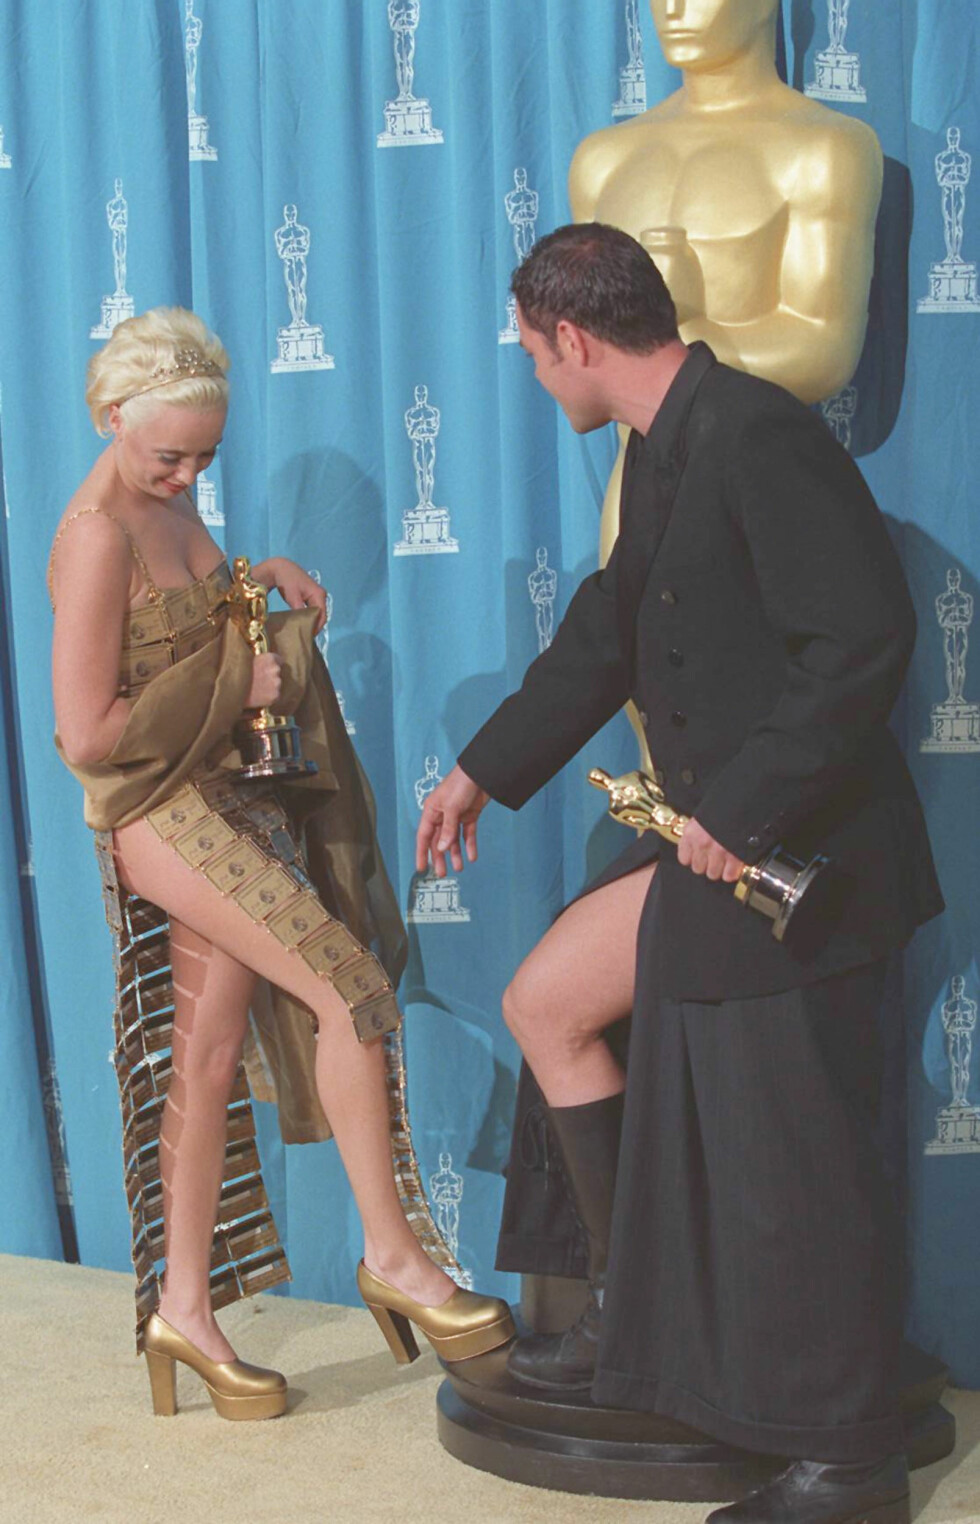 Lizzy Gardner shows off her dress of credit cards to Tim Chappel at the 1995 Academy Awards ceremony. Gardiner and Chappel won the award for Best Costume Design for their work on The Adventures of Priscilla, Queen of the Desert. - photographed: March 27, 1995 Foto: (c) Steve Starr/CORBIS/All Over Press